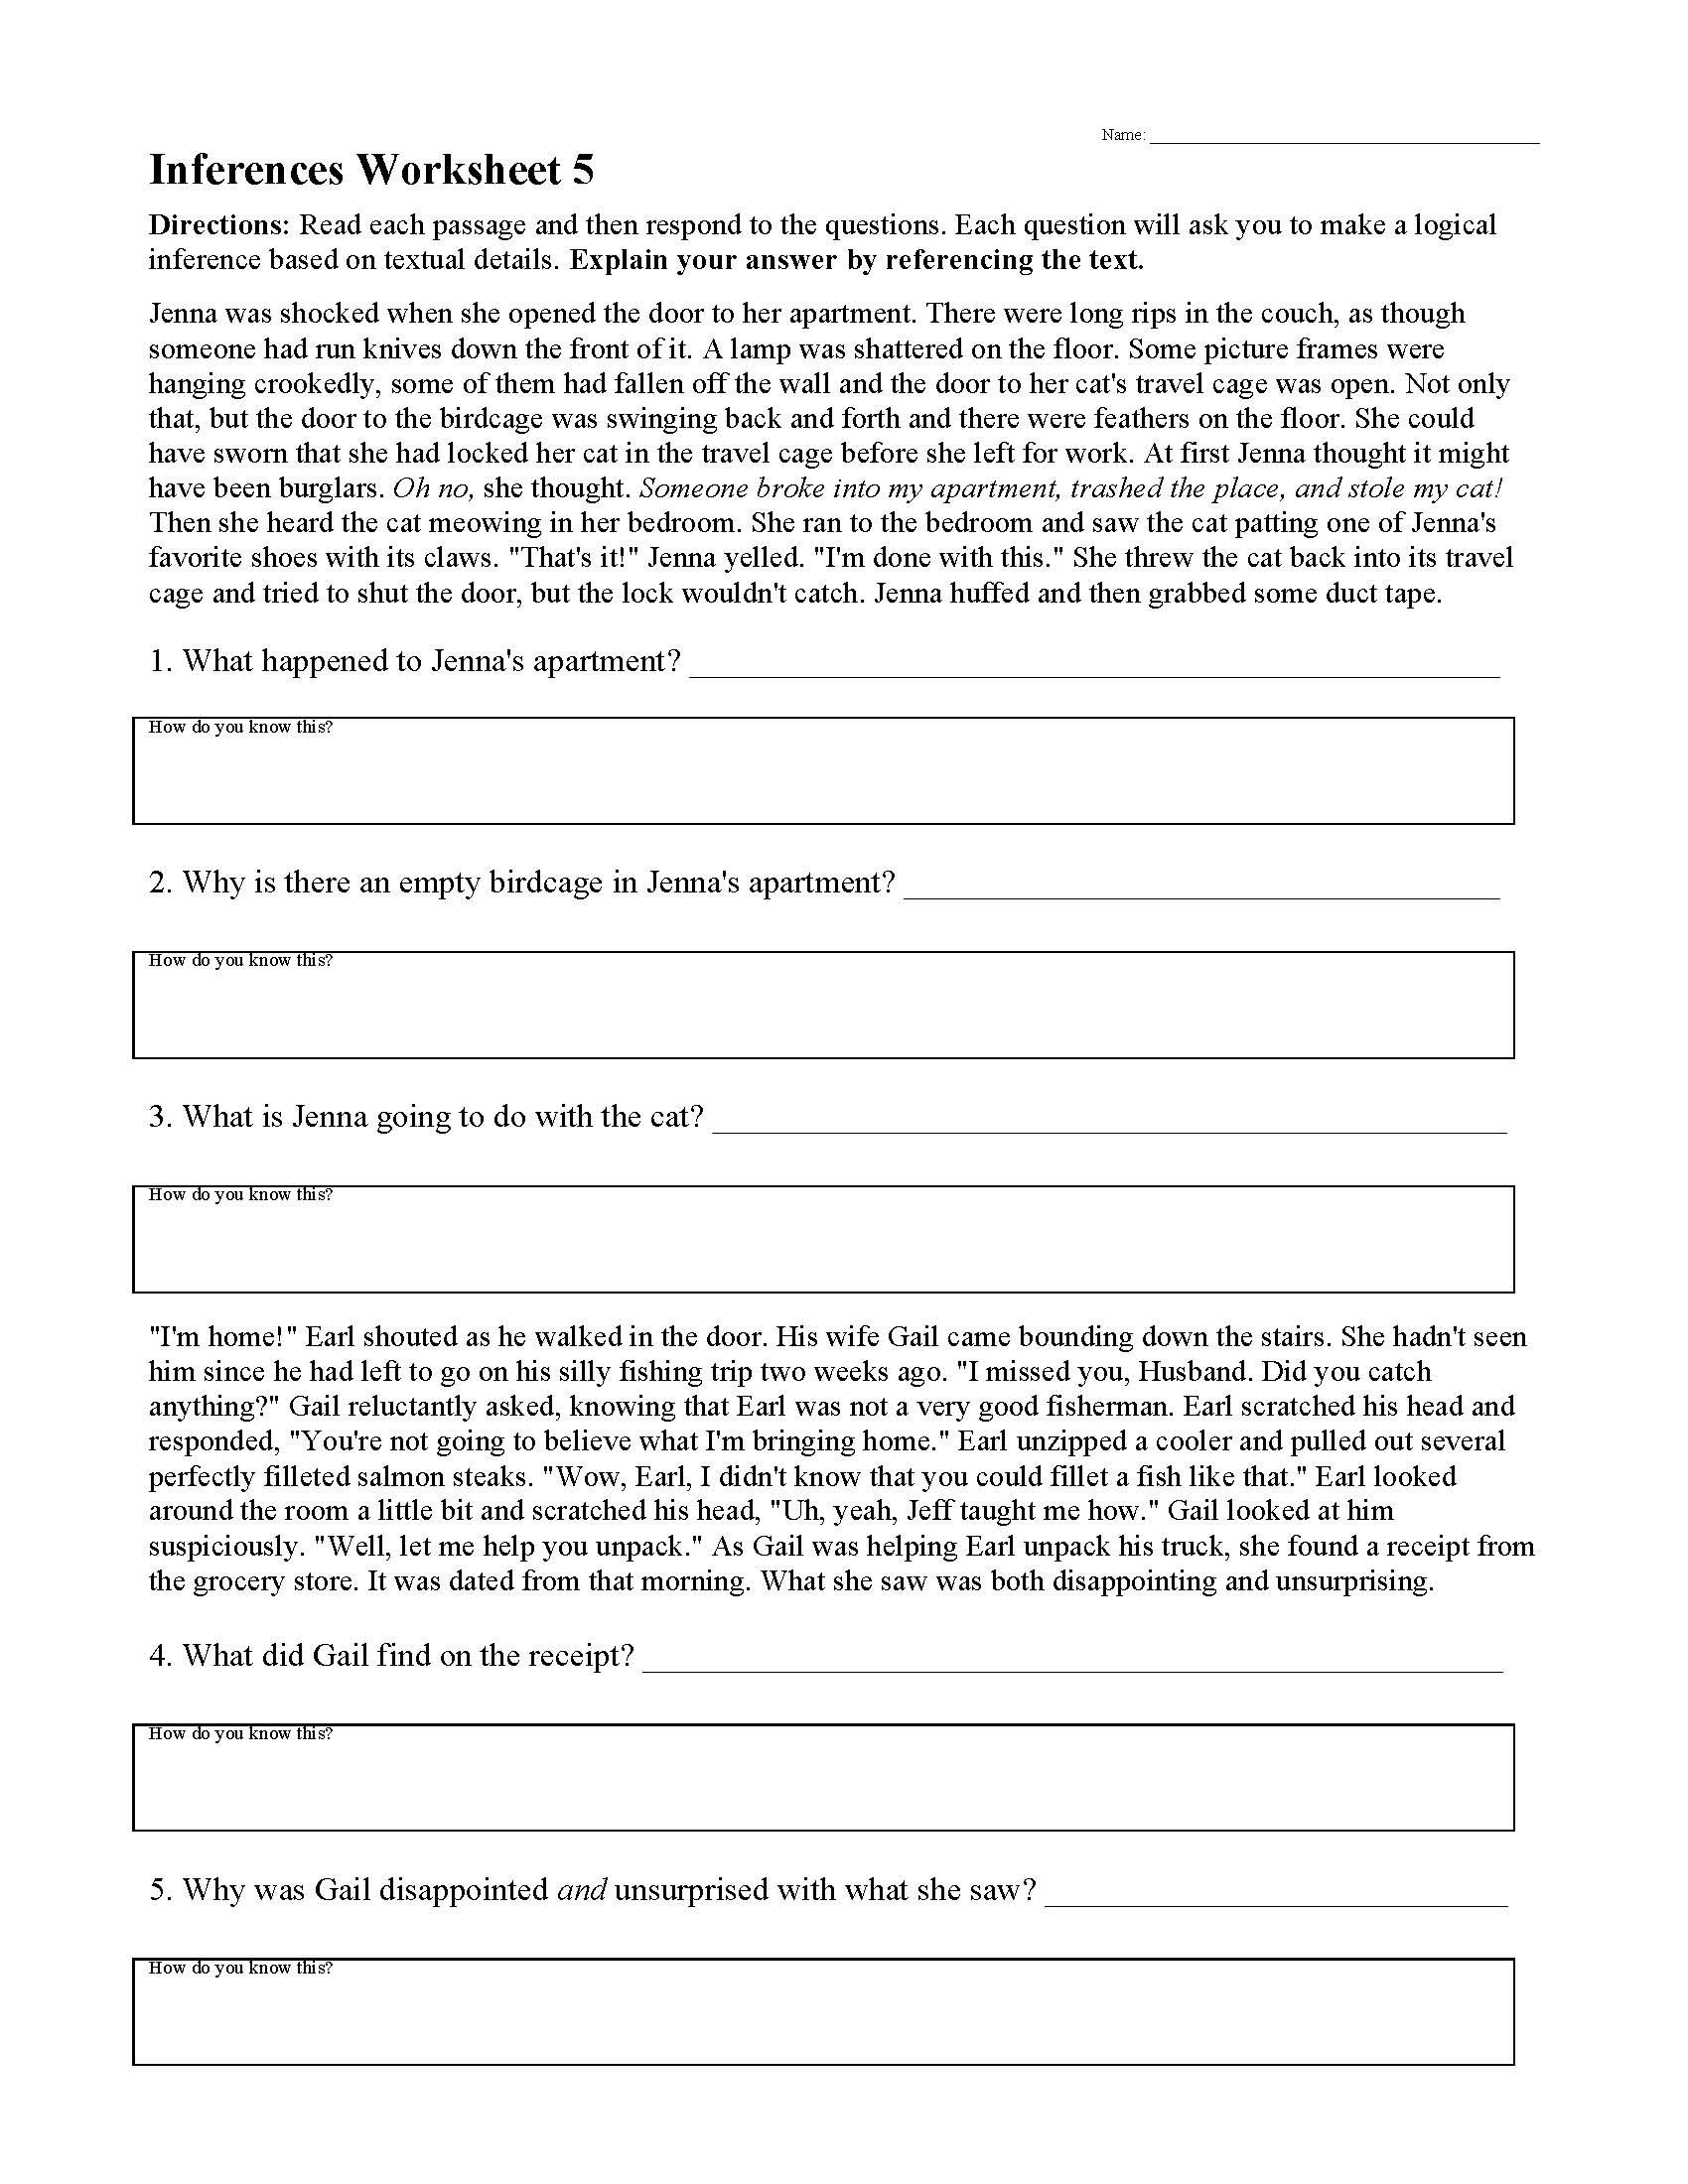 Middle School Inference Worksheets Inferences Worksheets